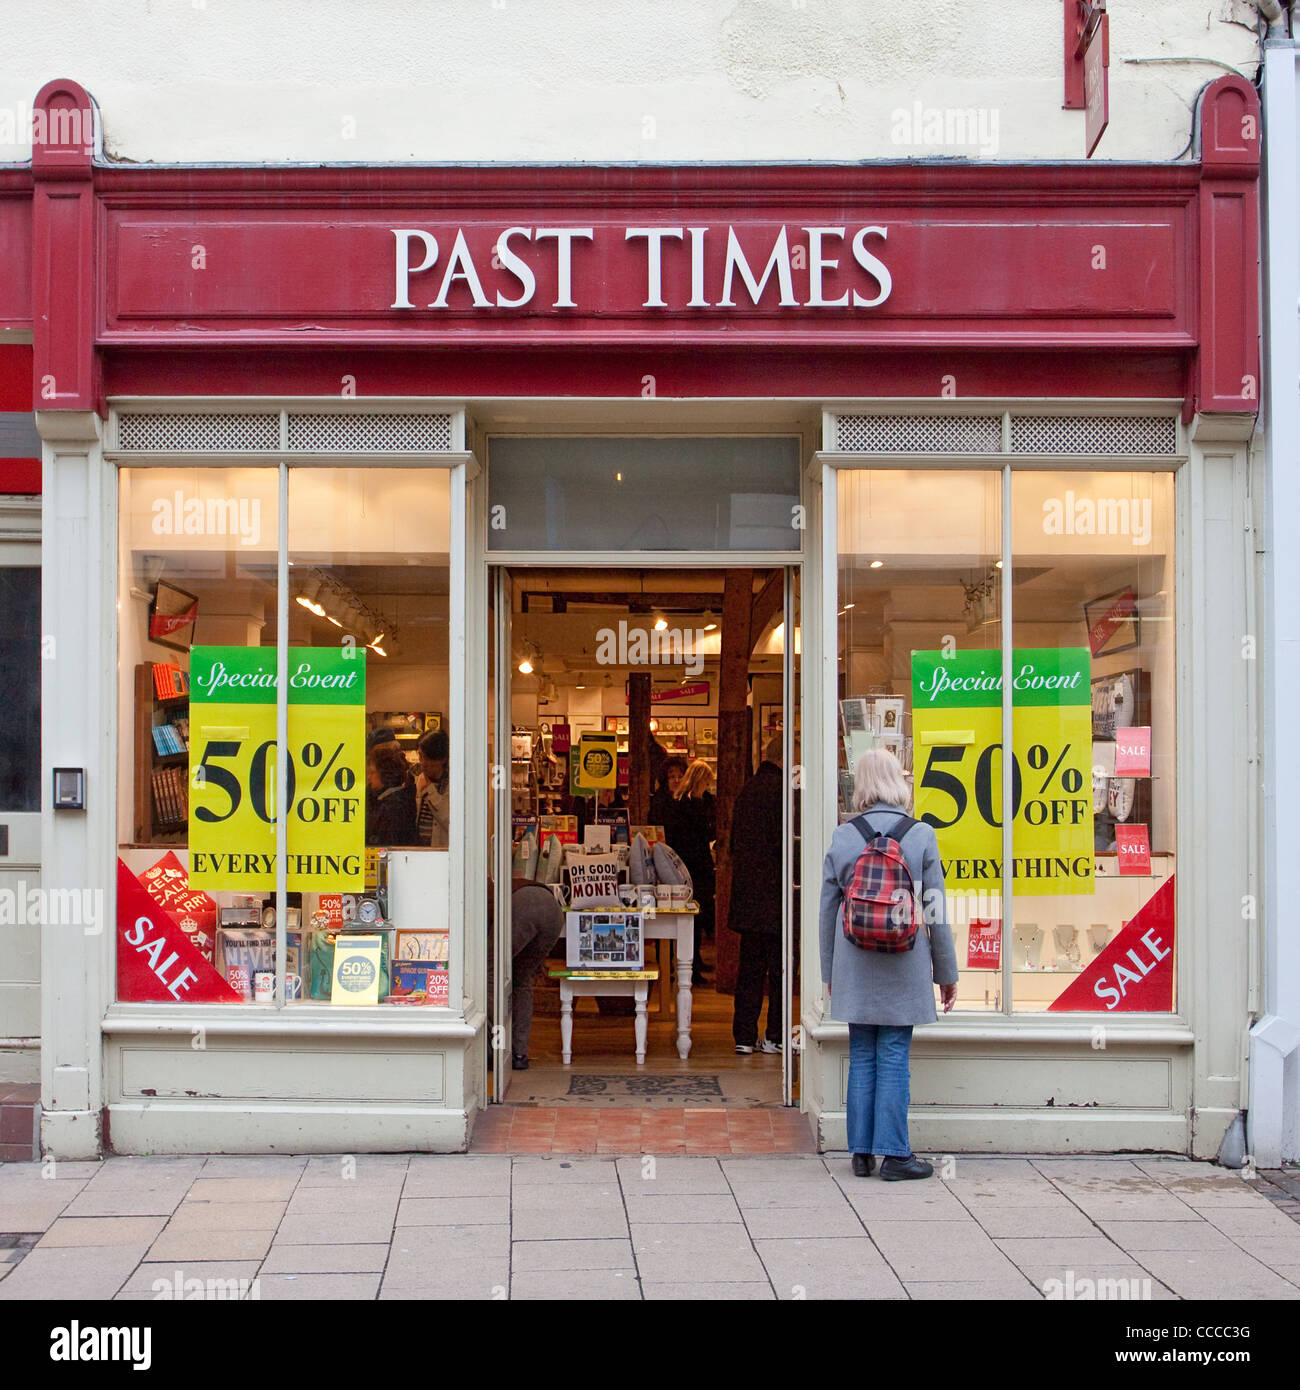 Past Times shop store Canterbury High Street UK. Business Now Ceased. - Stock Image